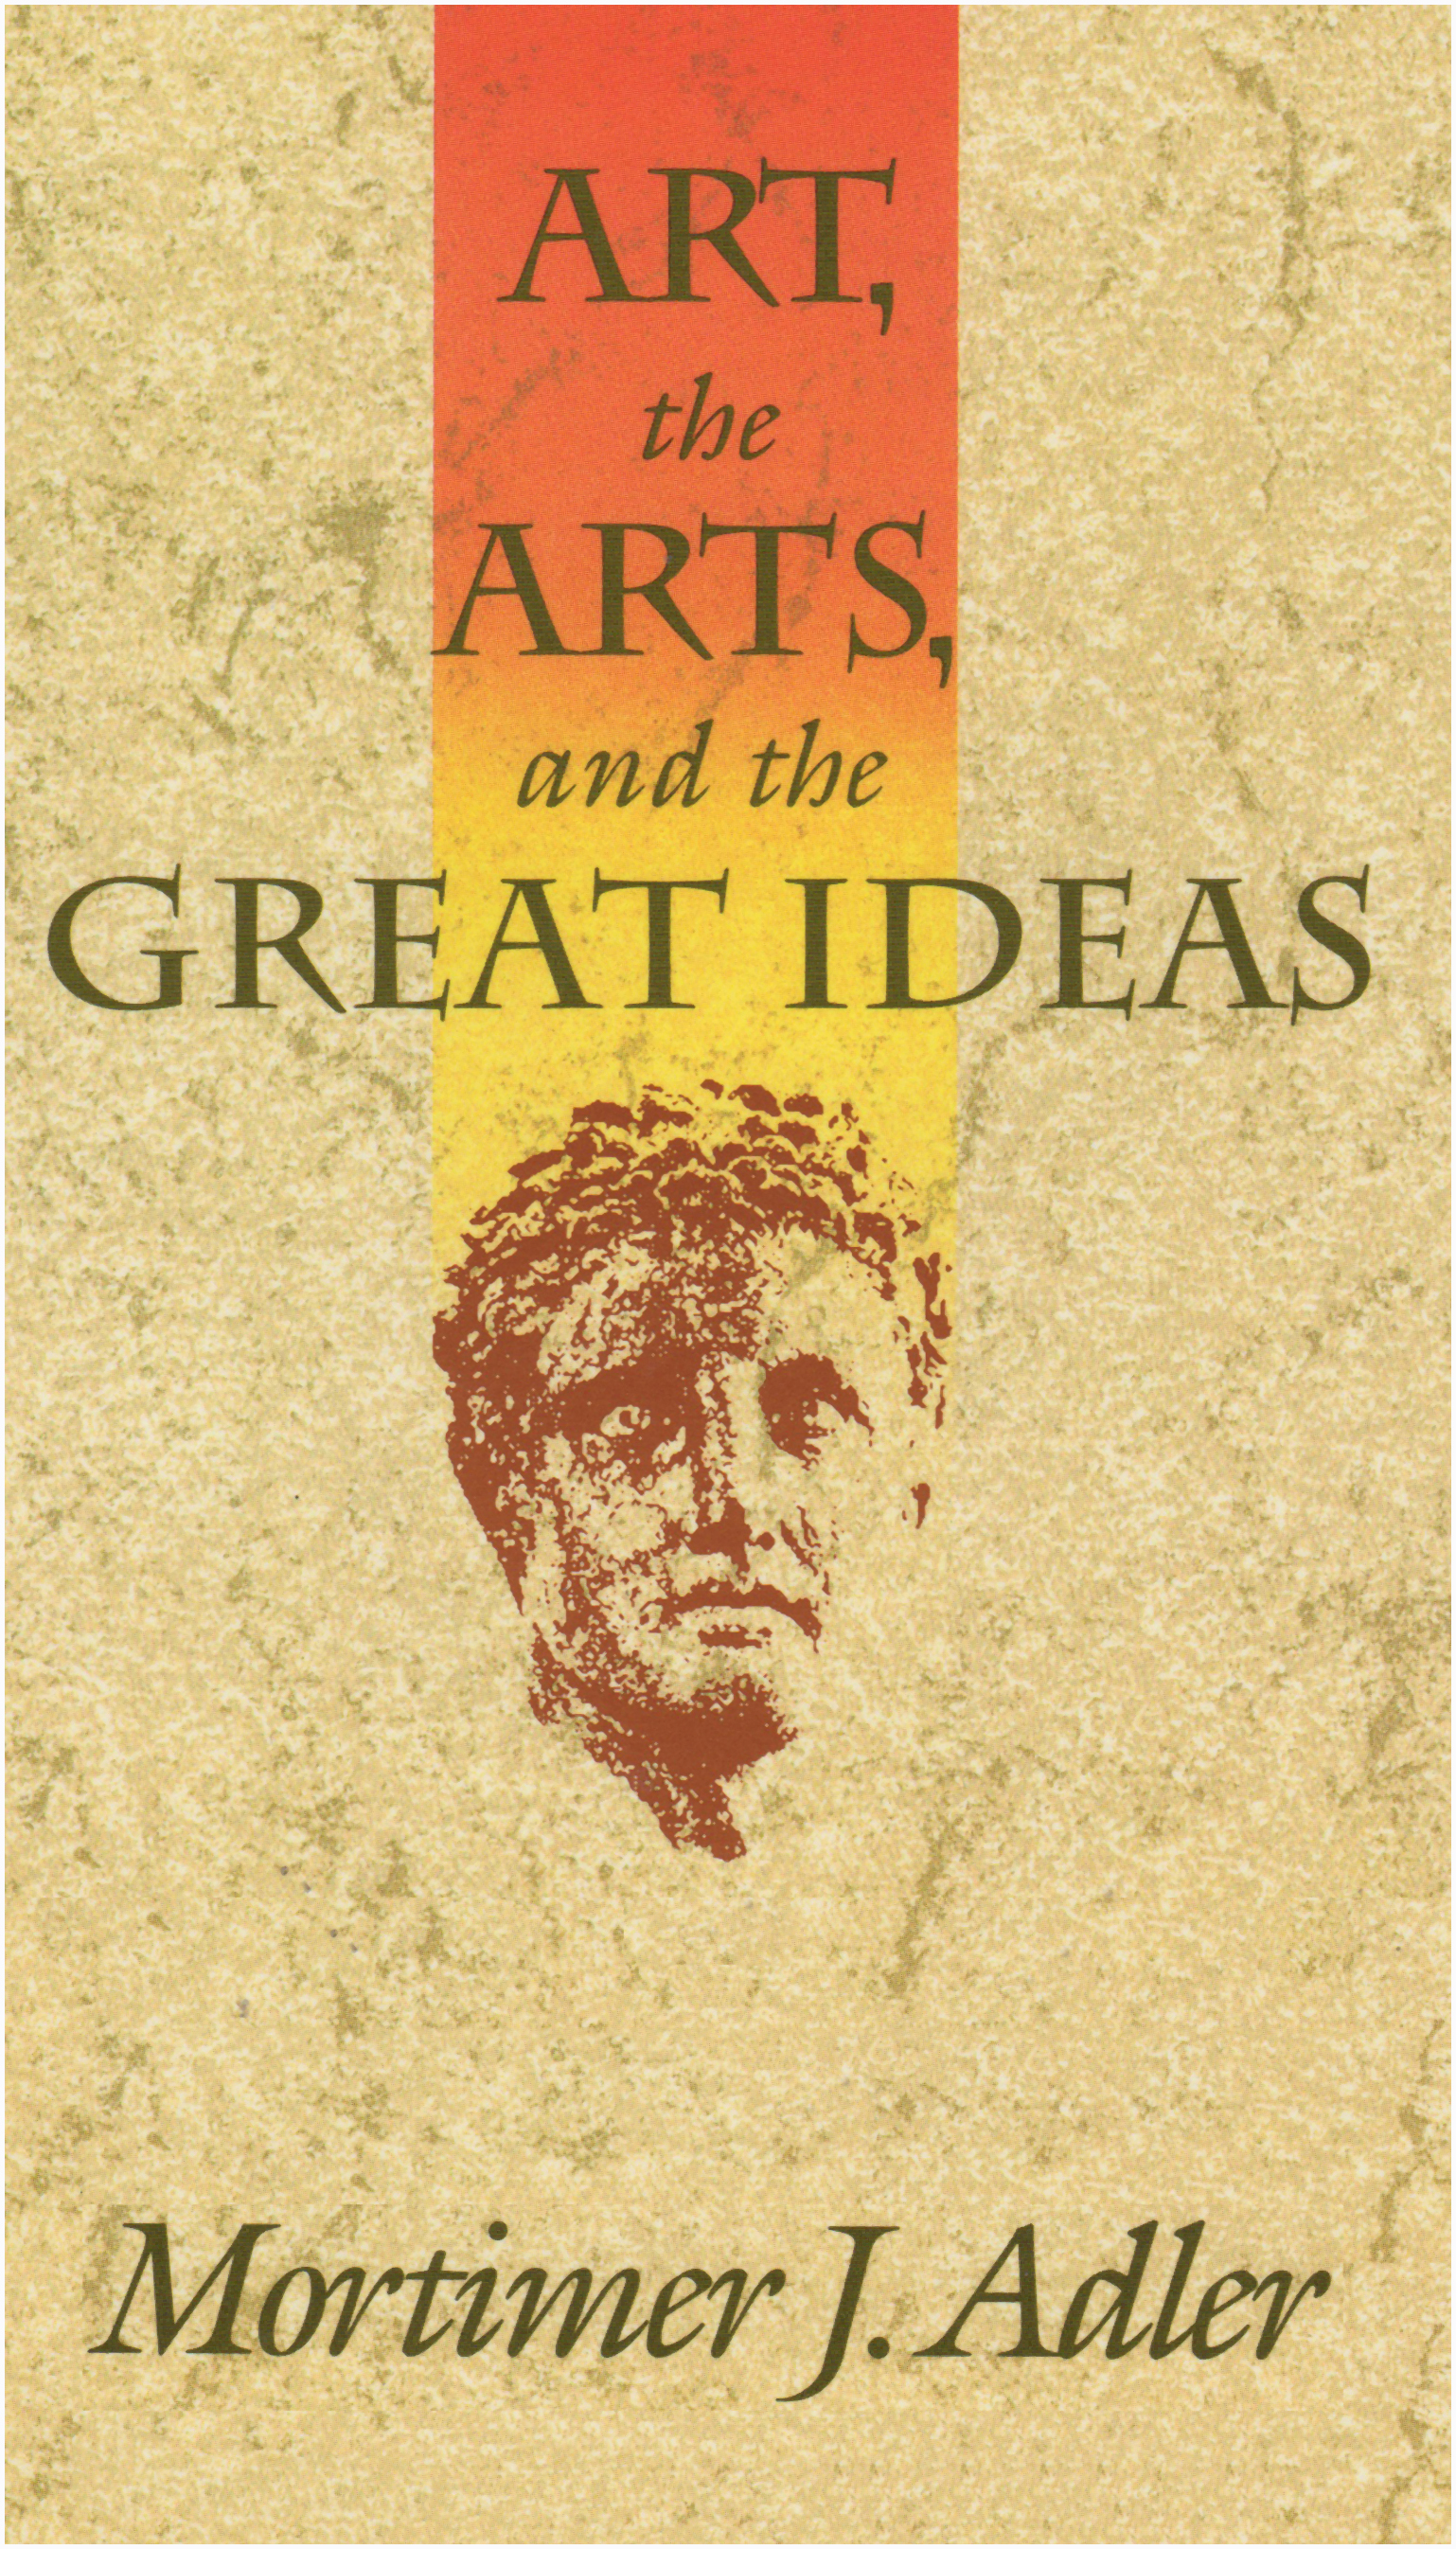 Art, the Arts and the Great Ideas.